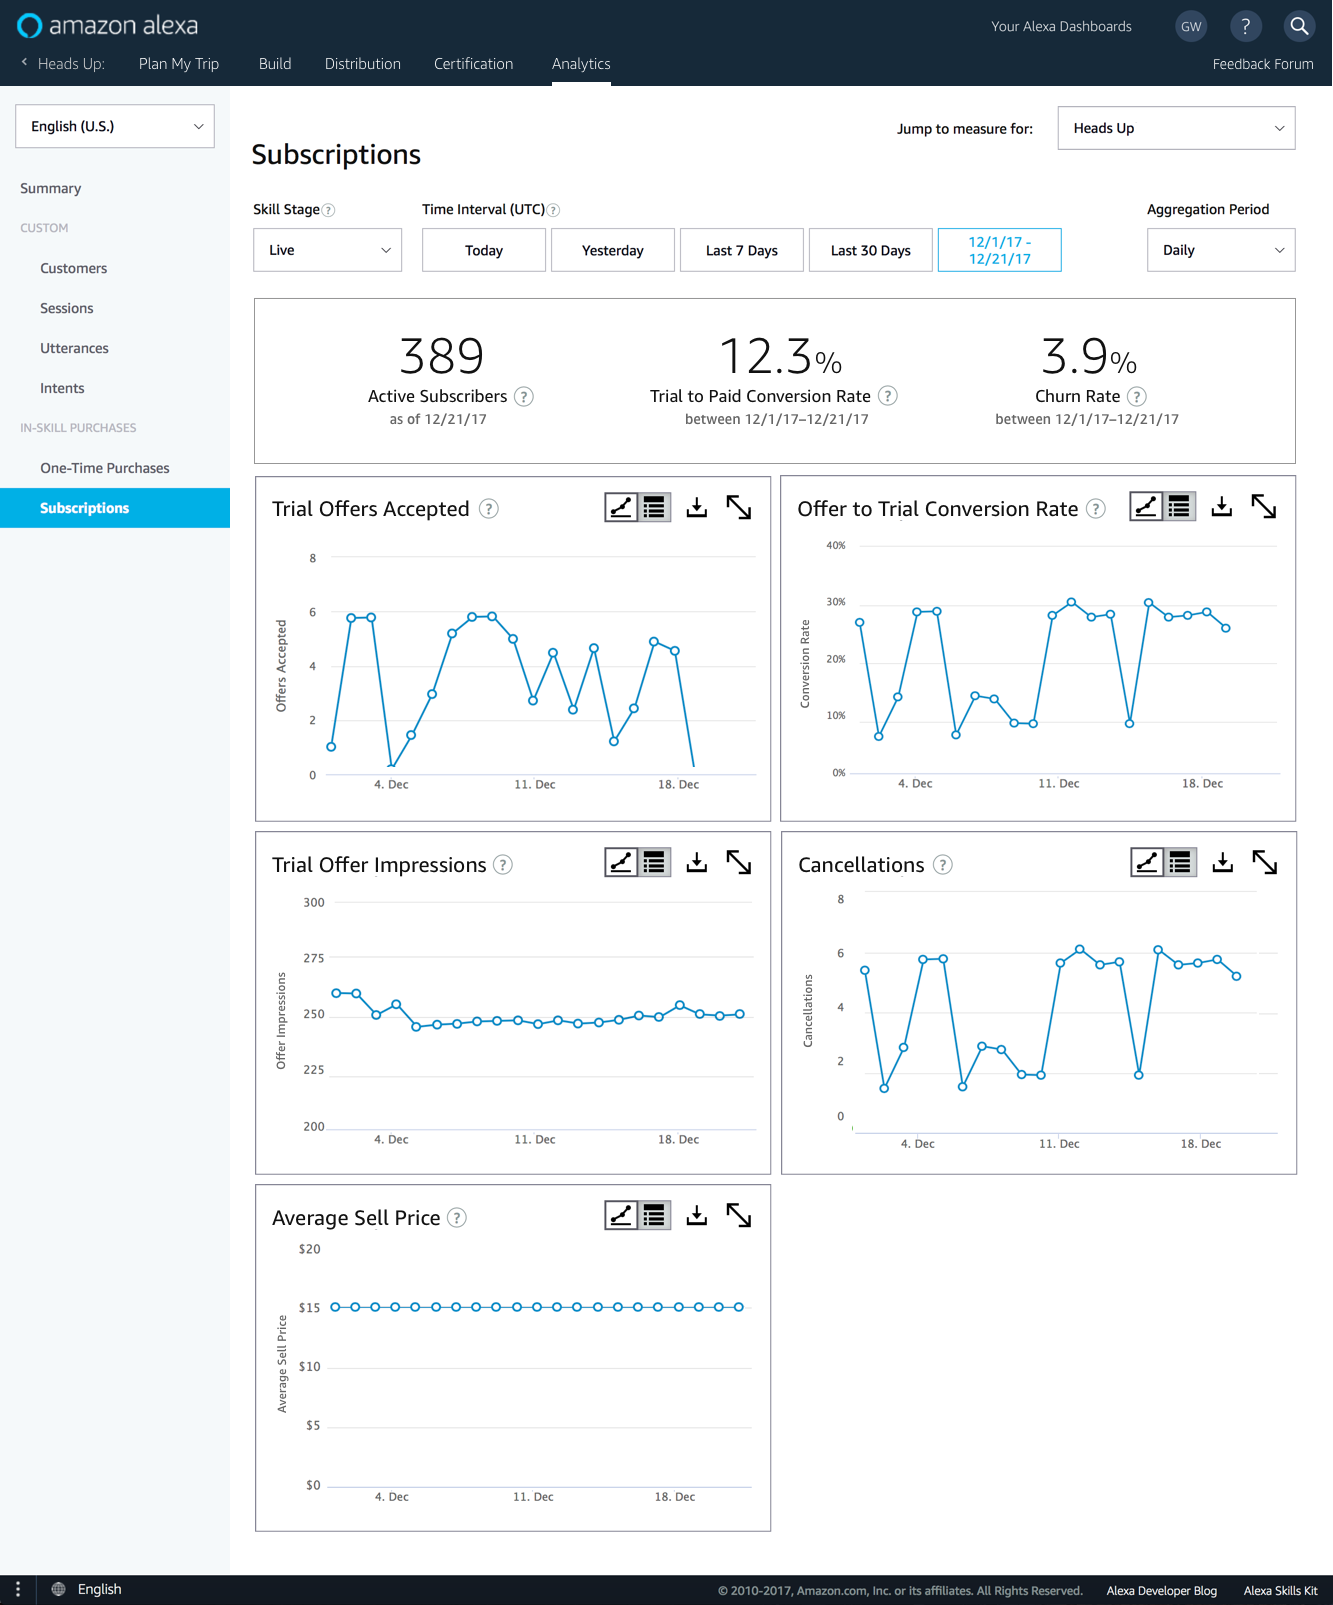 Subscription purchase reporting metrics for skills